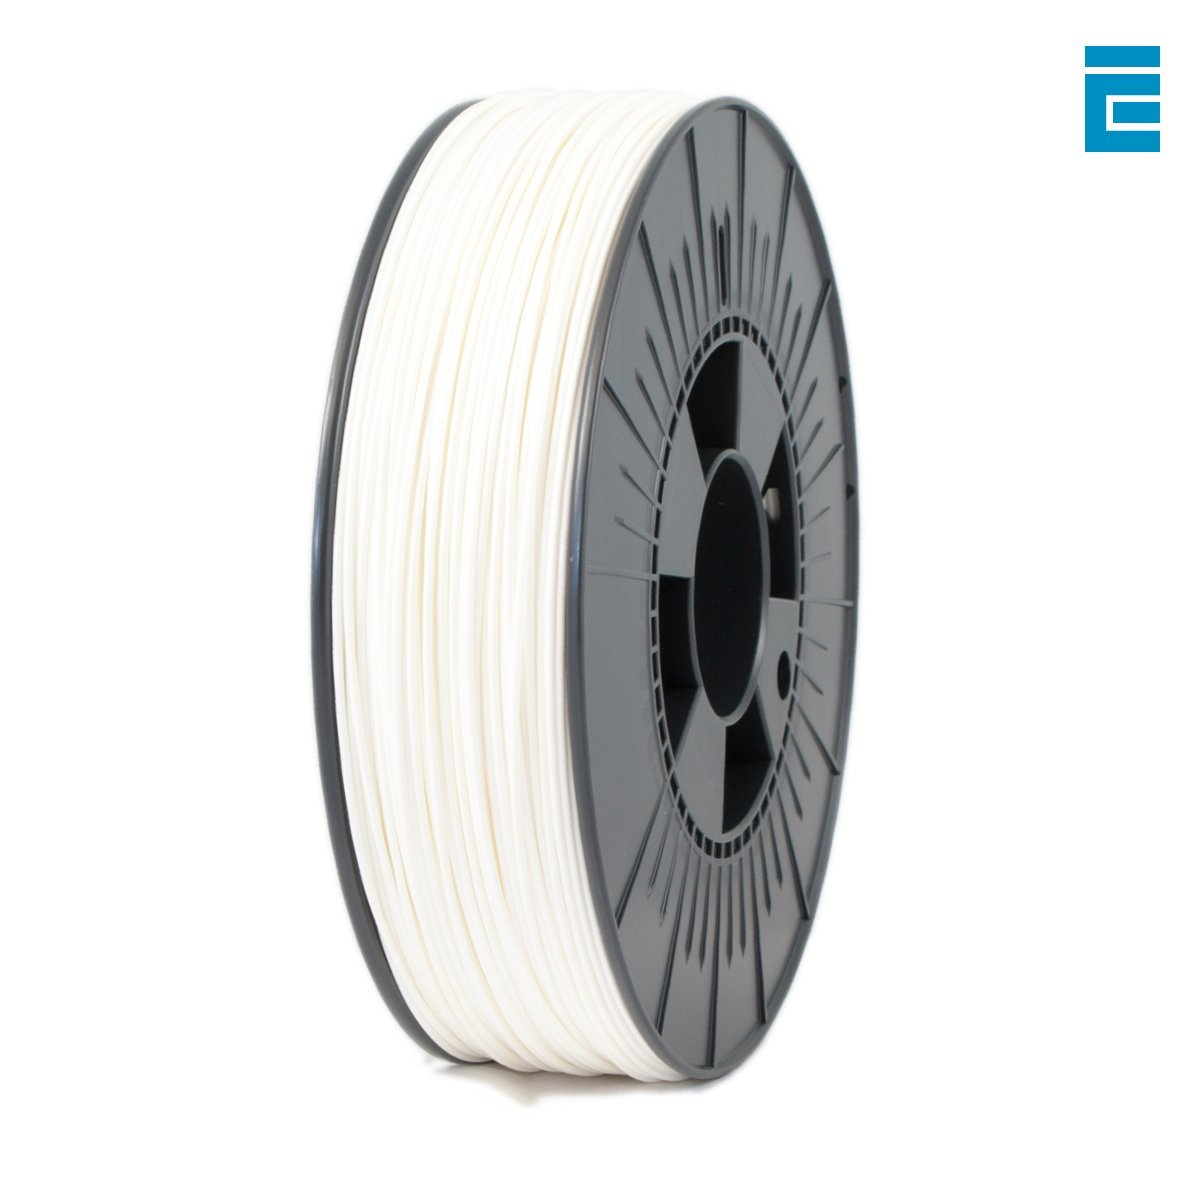 ICE FILAMENTS ICEFIL1PLA005 PLA Filament, 1.75 mm, 0.75 kg, Wondrous White DF